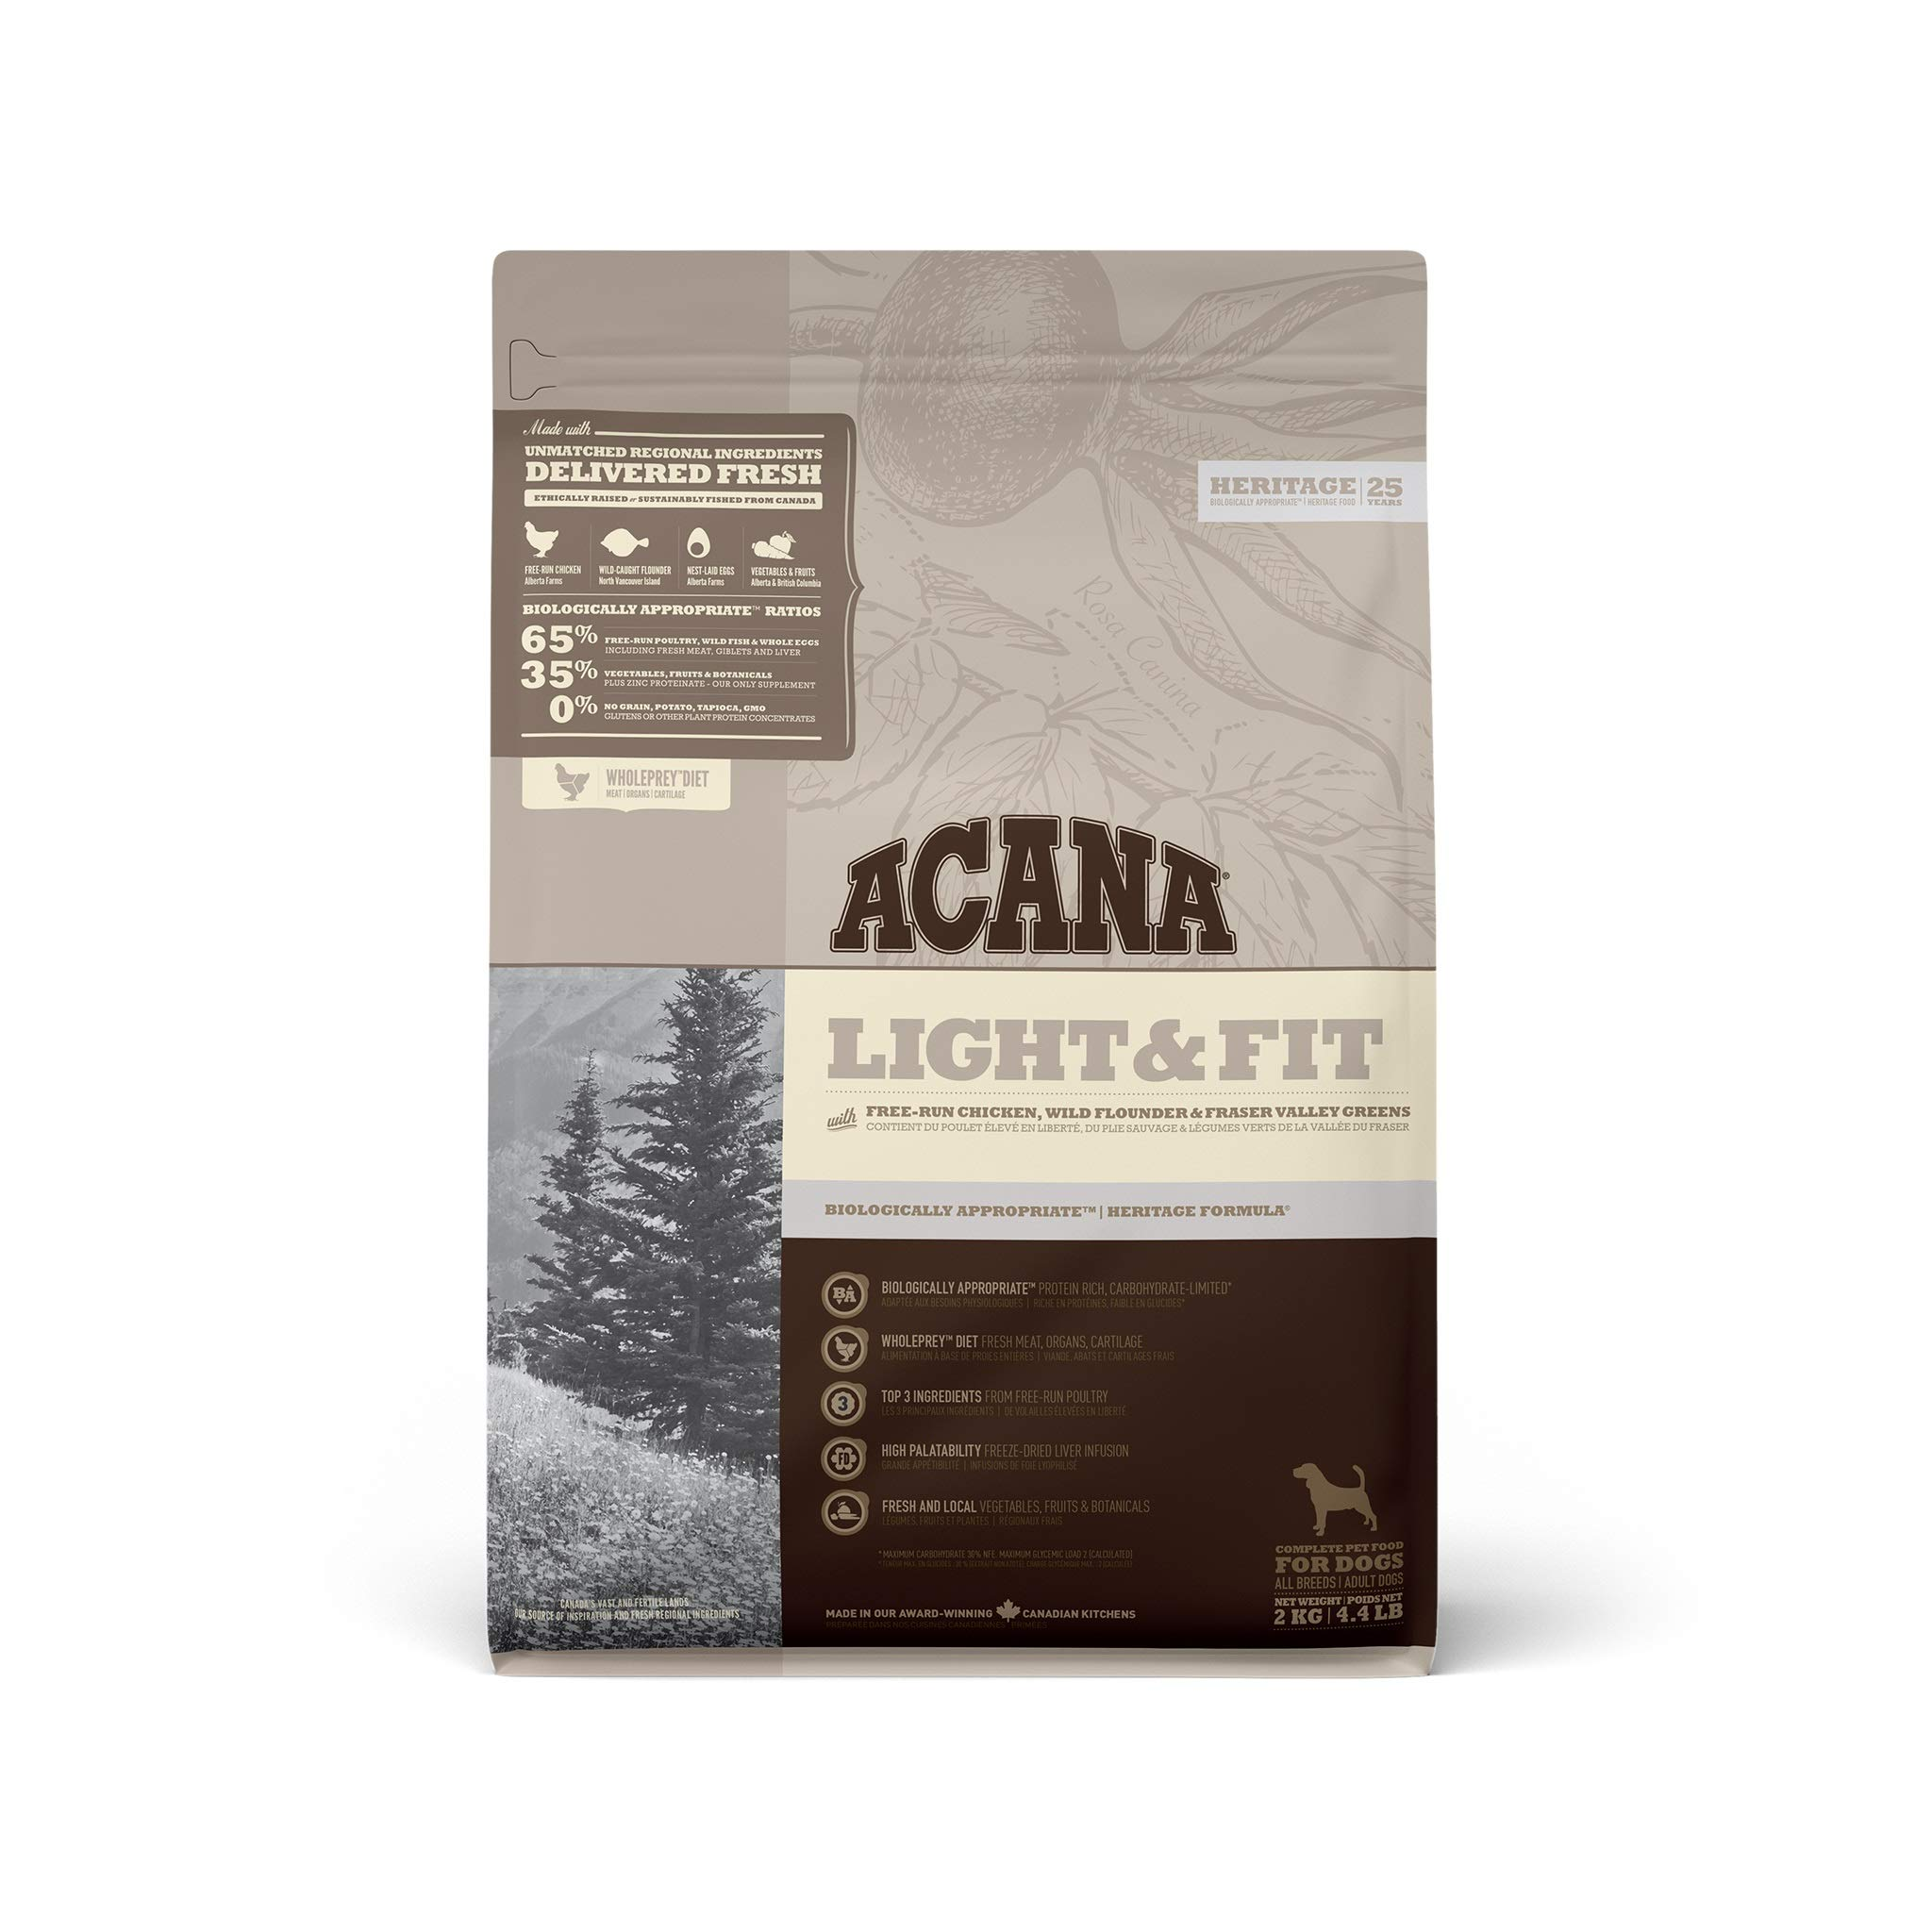 Acana Light and Fit Dog Food, 2 kg